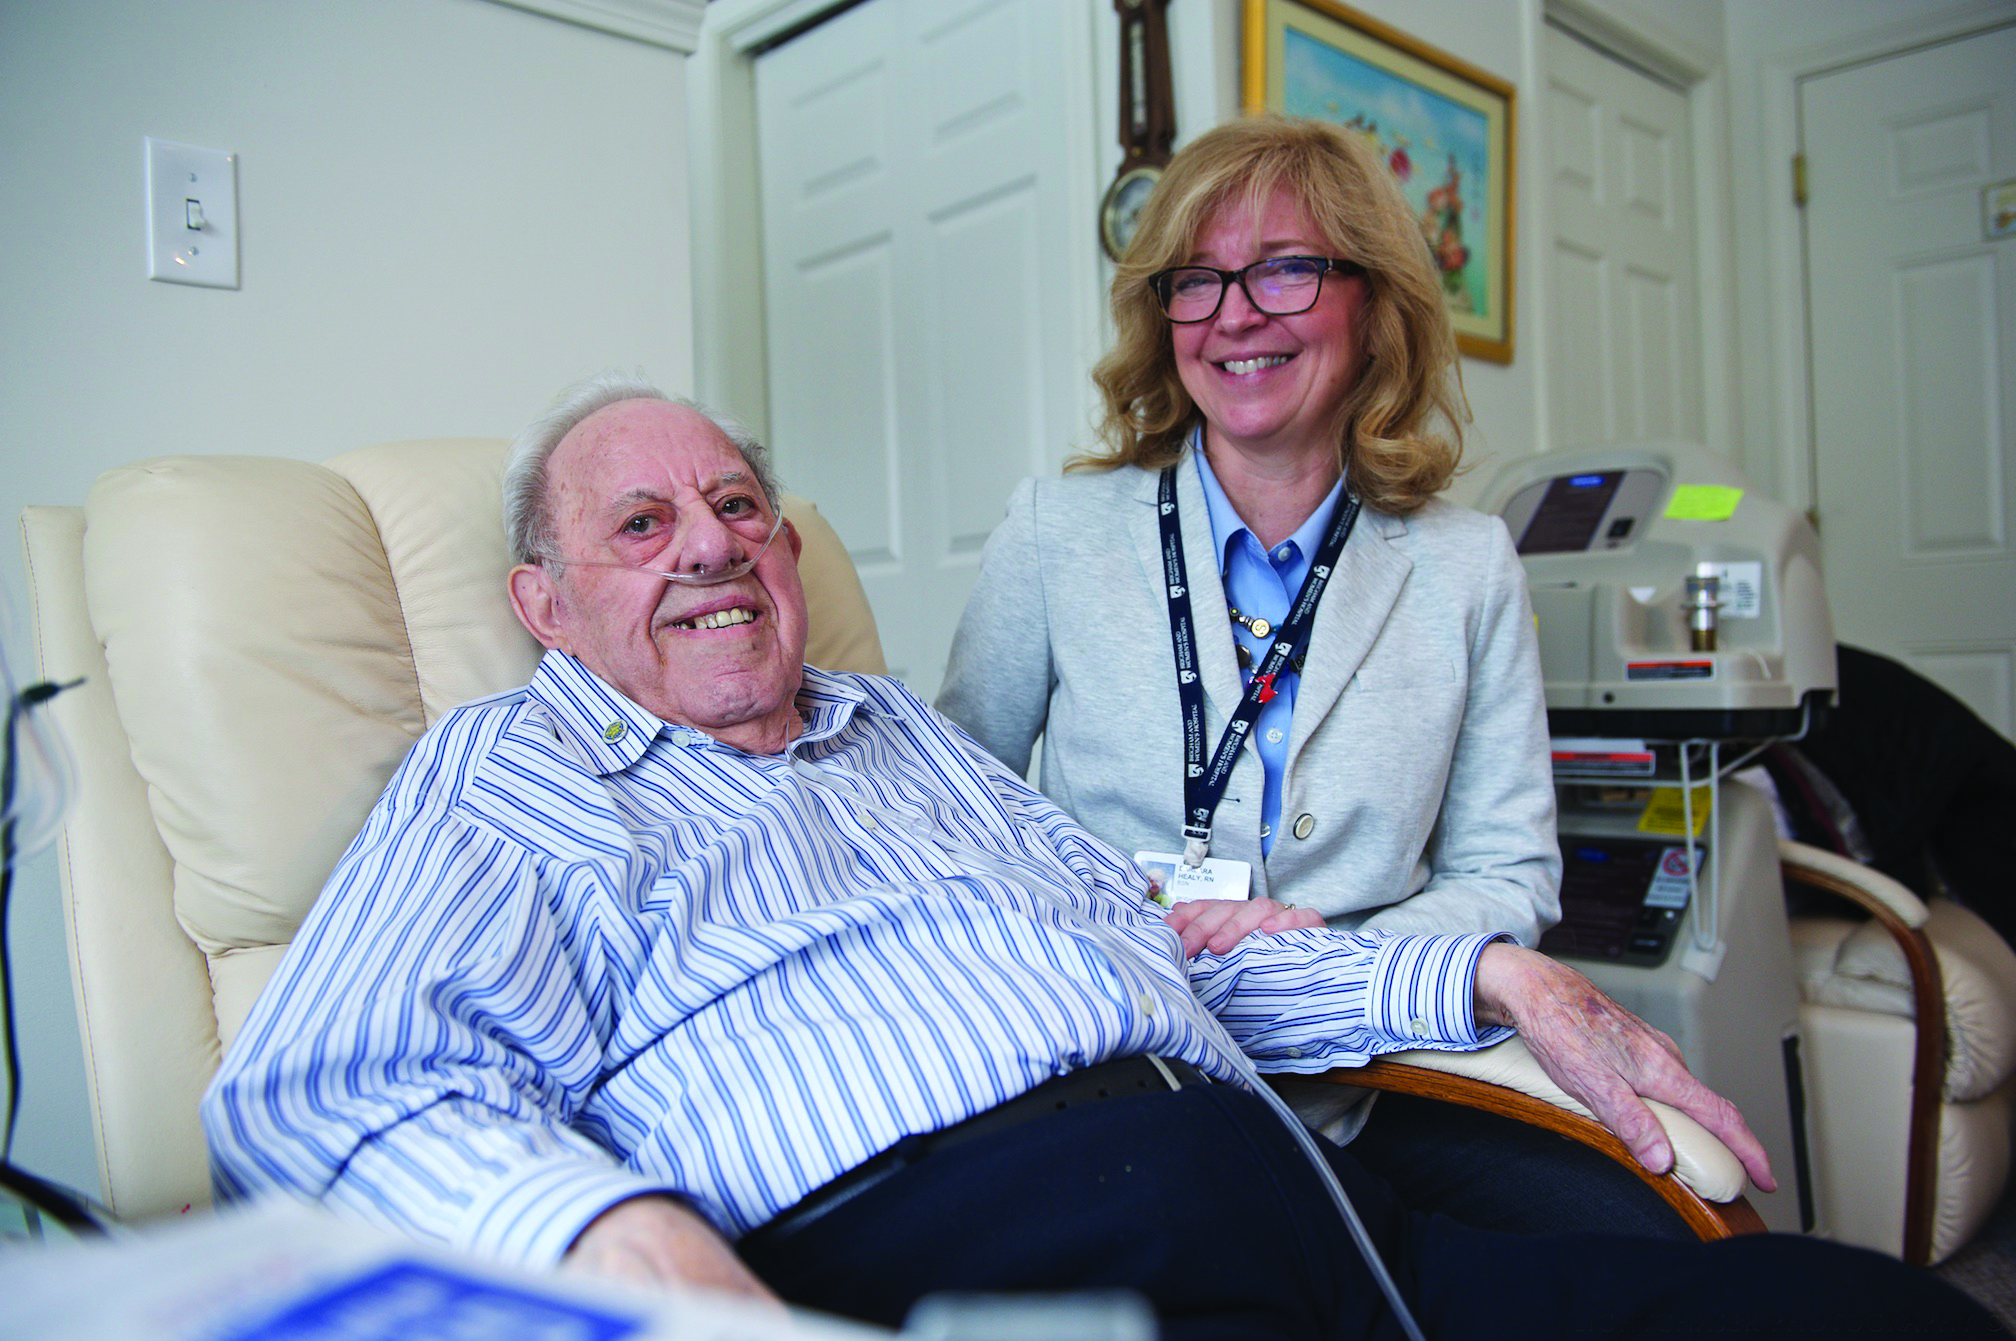 BRIGHAM AND WOMEN'S HOSPITAL NURSE BARBARA HEALY VISITS PATIENT STEPHEN CHRISTAFONO AT DEUTSCHES ALTENHEIM TUESDAY MORNING